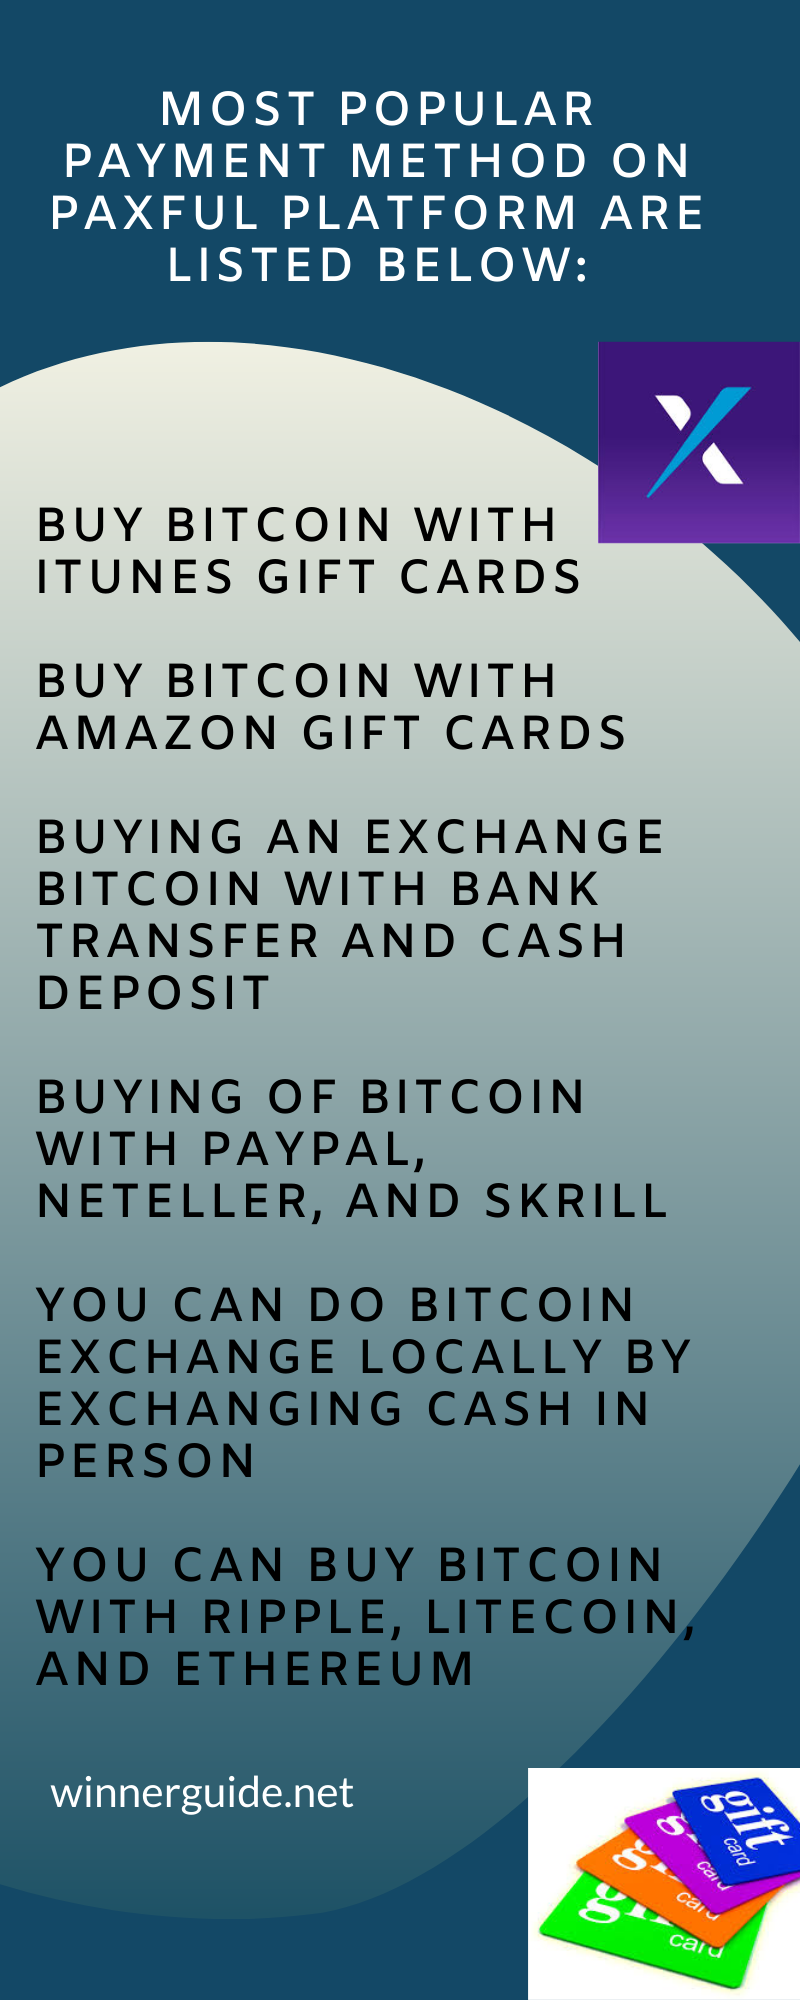 Paxful Platform Methods Buy Bitcoin Itunes Gift Cards Financial Services